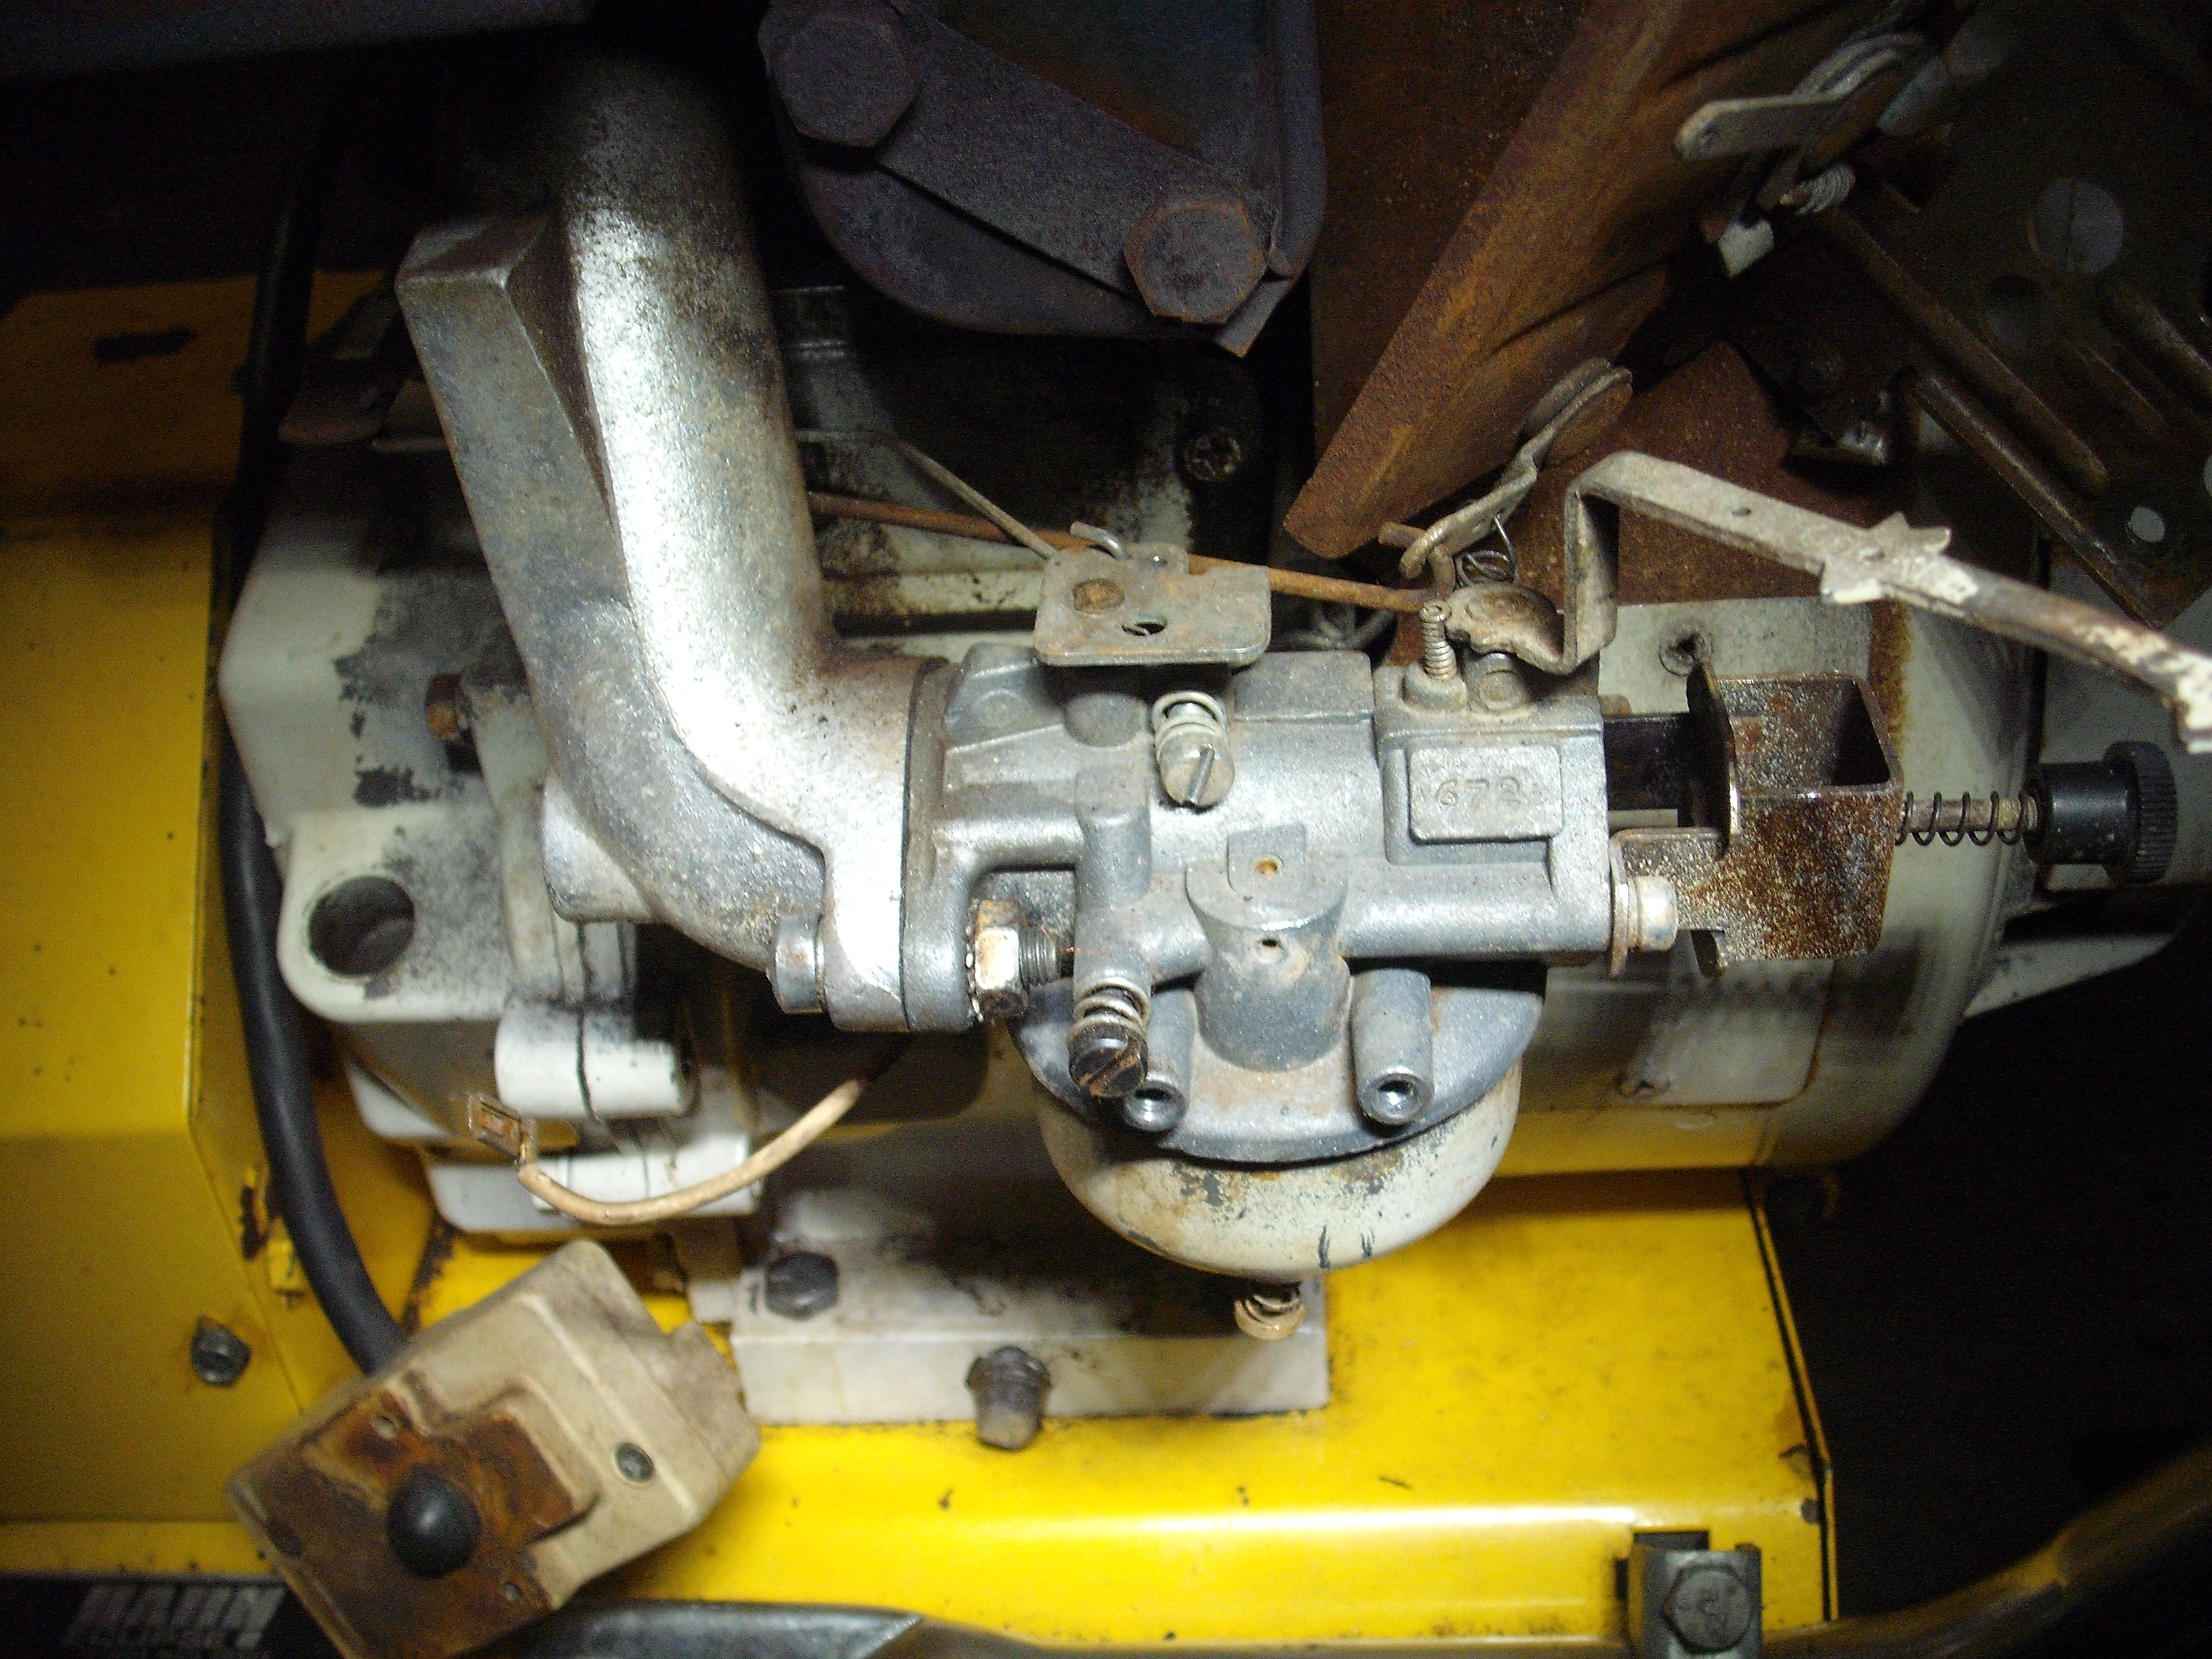 I Have An Older Tecumseh 8 Hp H80 Engine  I Disturbed The Carb Linkage And Forgot Where It All